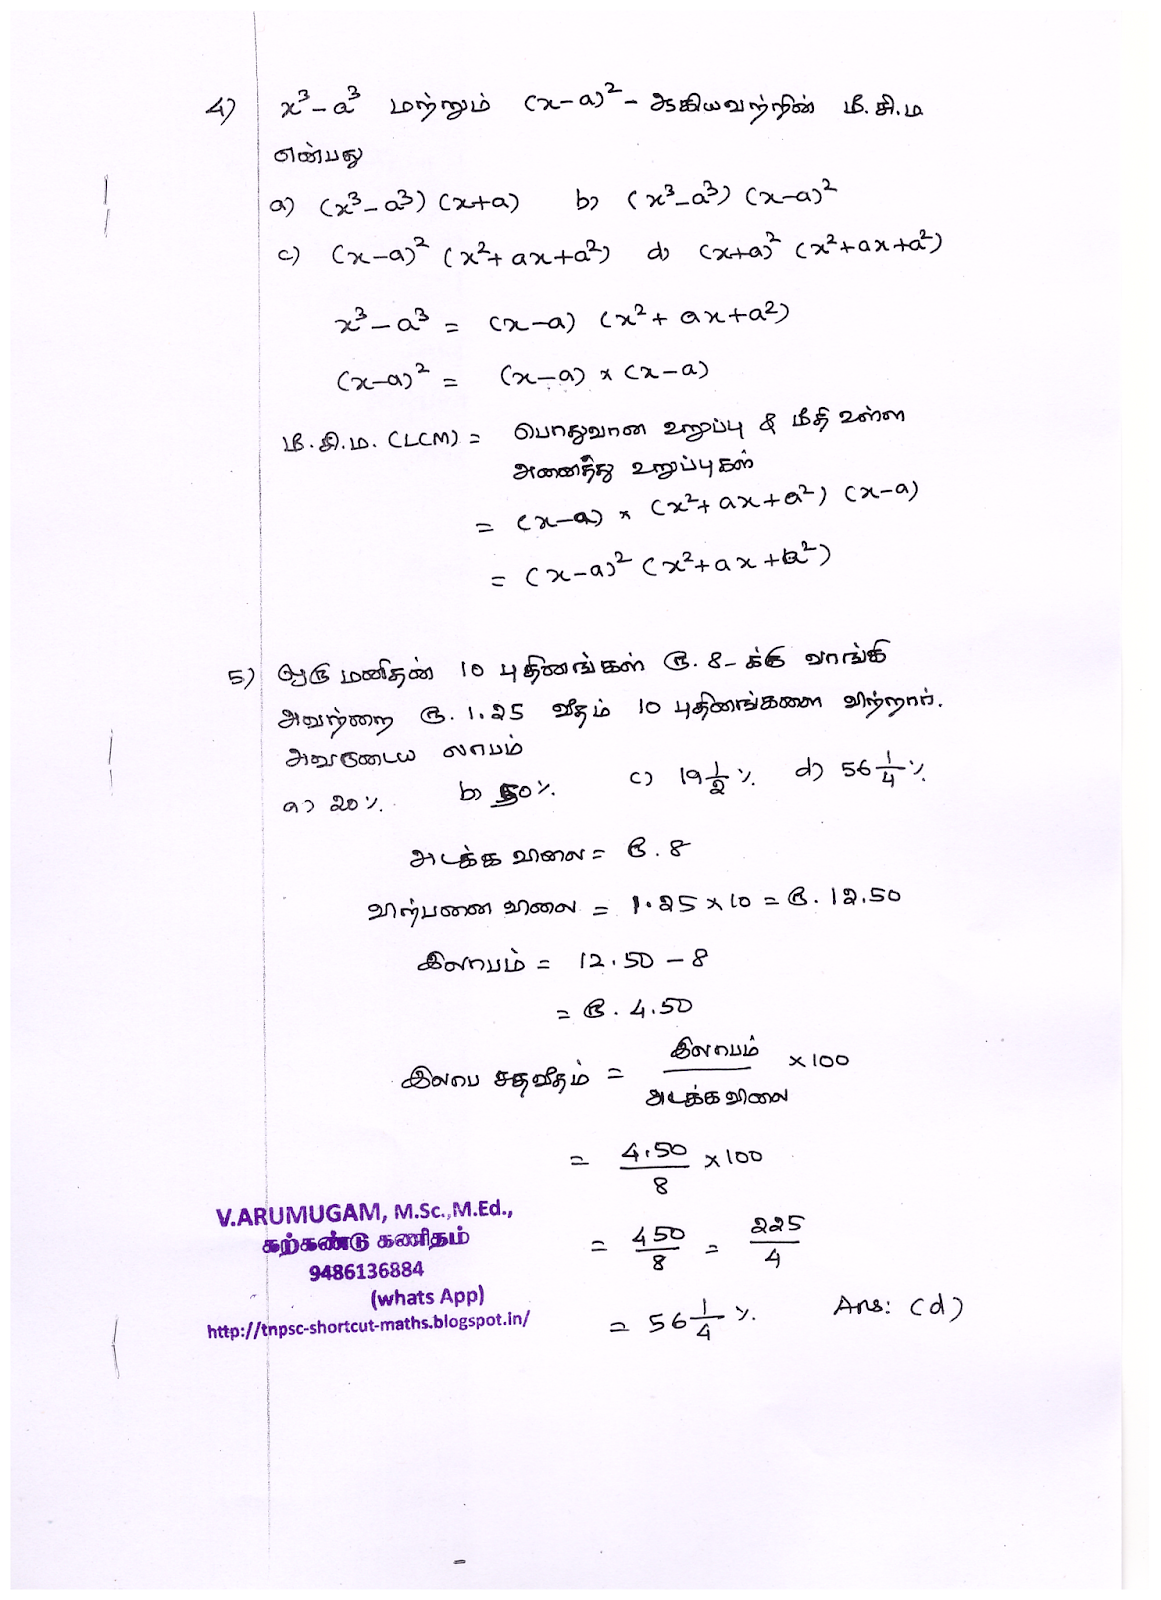 TNPSC – 2019 - Lecturer in Statistics in the TN Medical Service & Assistant Director of Horticulture and Horticultural Officer in the TN Horticultural Service EXAM - EXAM DATE: 12.01.2019